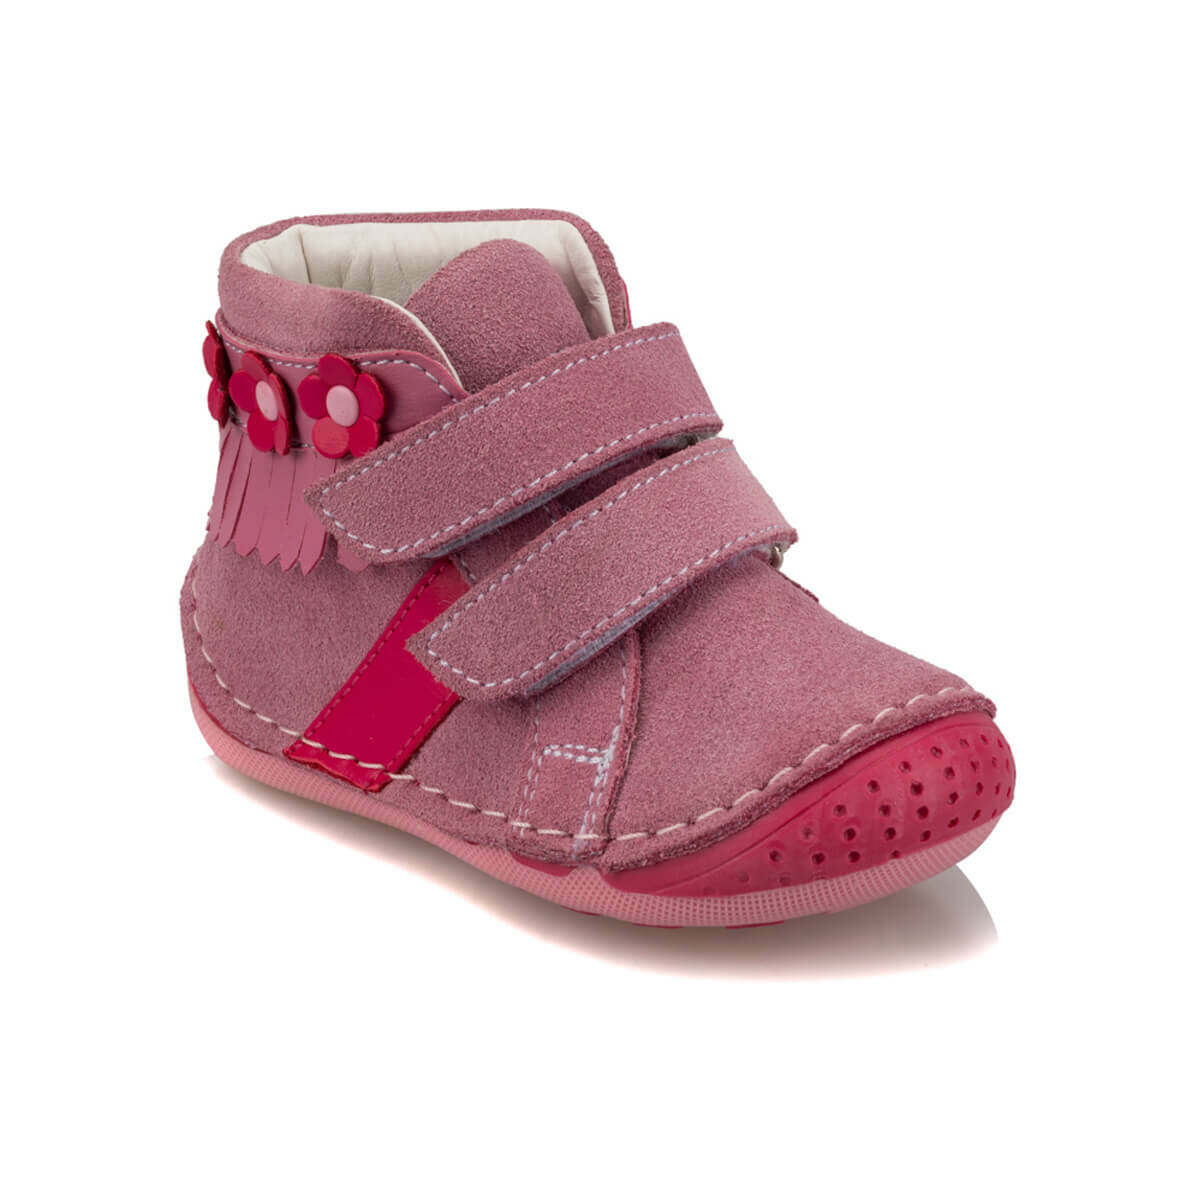 FLO 92.511742.I Pink Female Child Boots Polaris